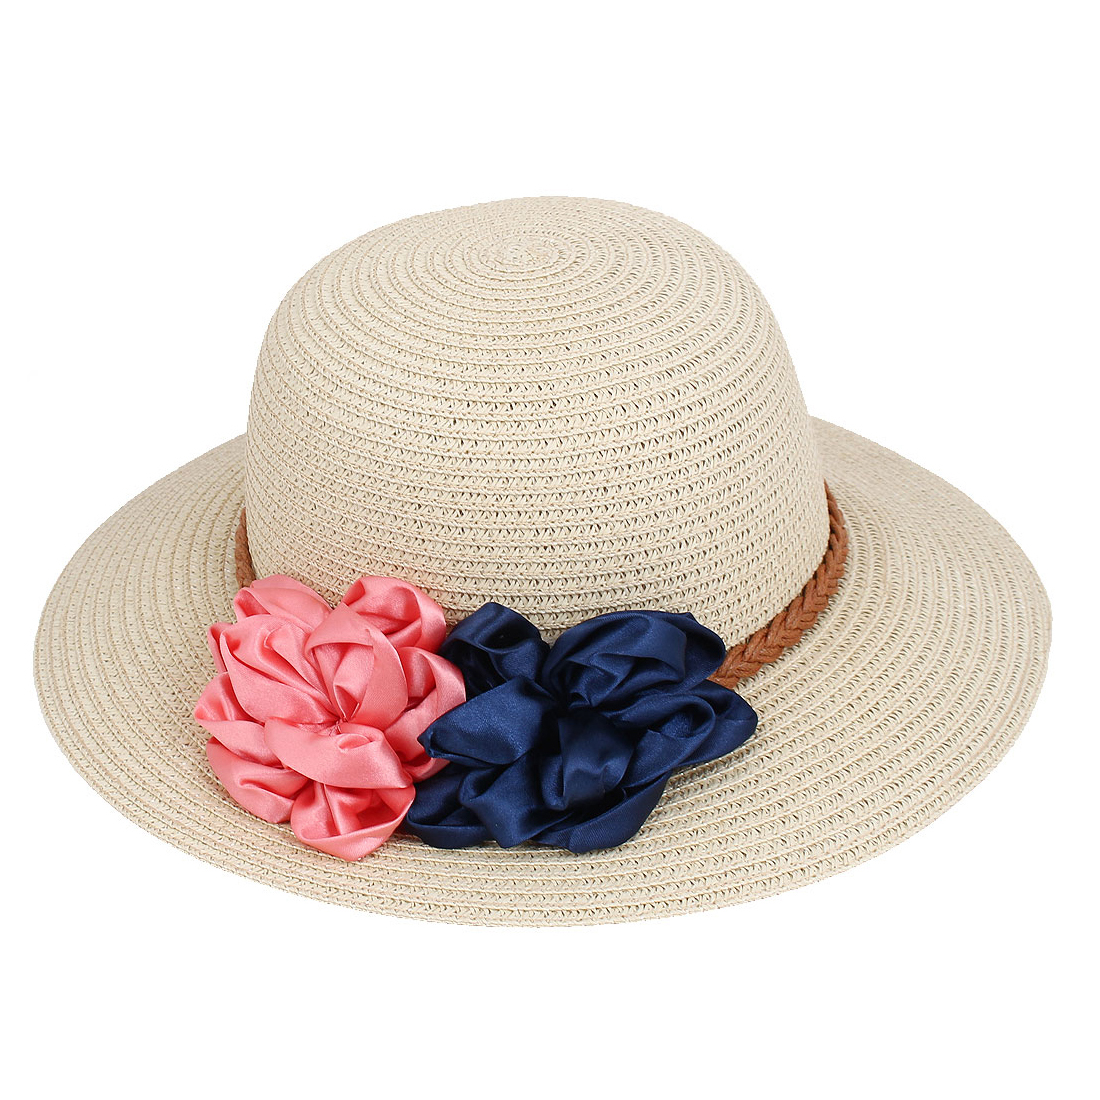 Lady Women Vacation Summer Beach Sun Floppy Wide Brim Floral Straw Hat Beige